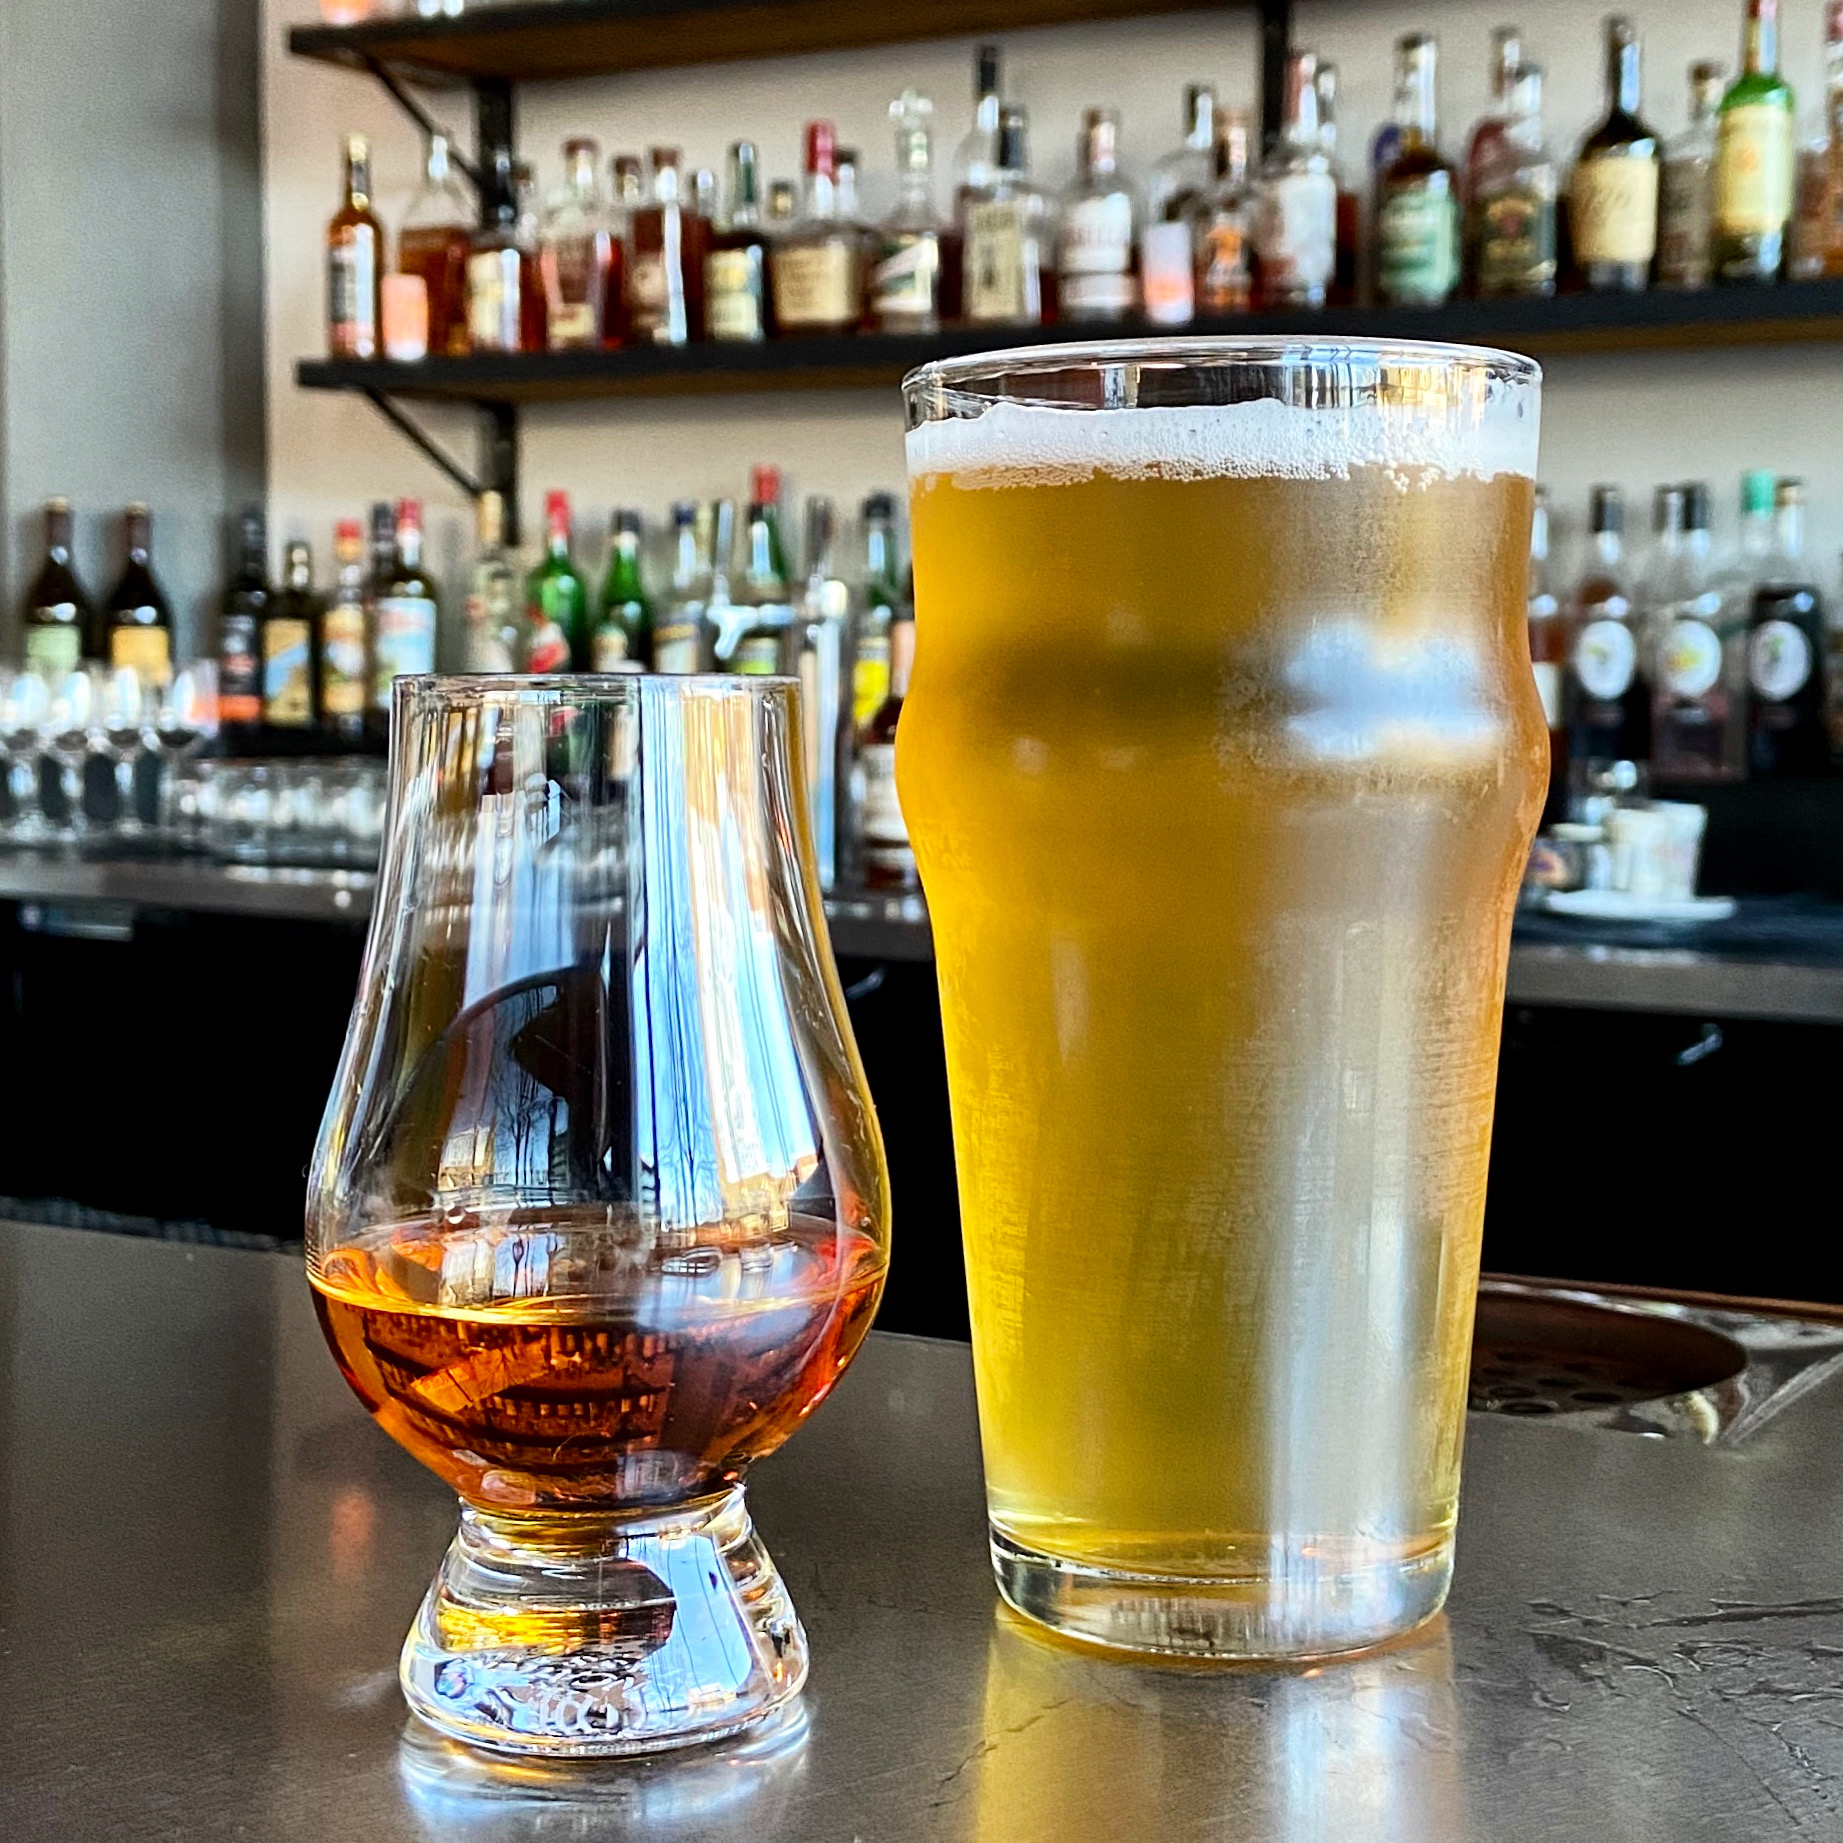 ShiftBeer Single Hop Pale Ale from StormBreaker Brewing and a neat pour of 13 Year Elijah Craig Single Barrel Bourbon at Shift Drinks.